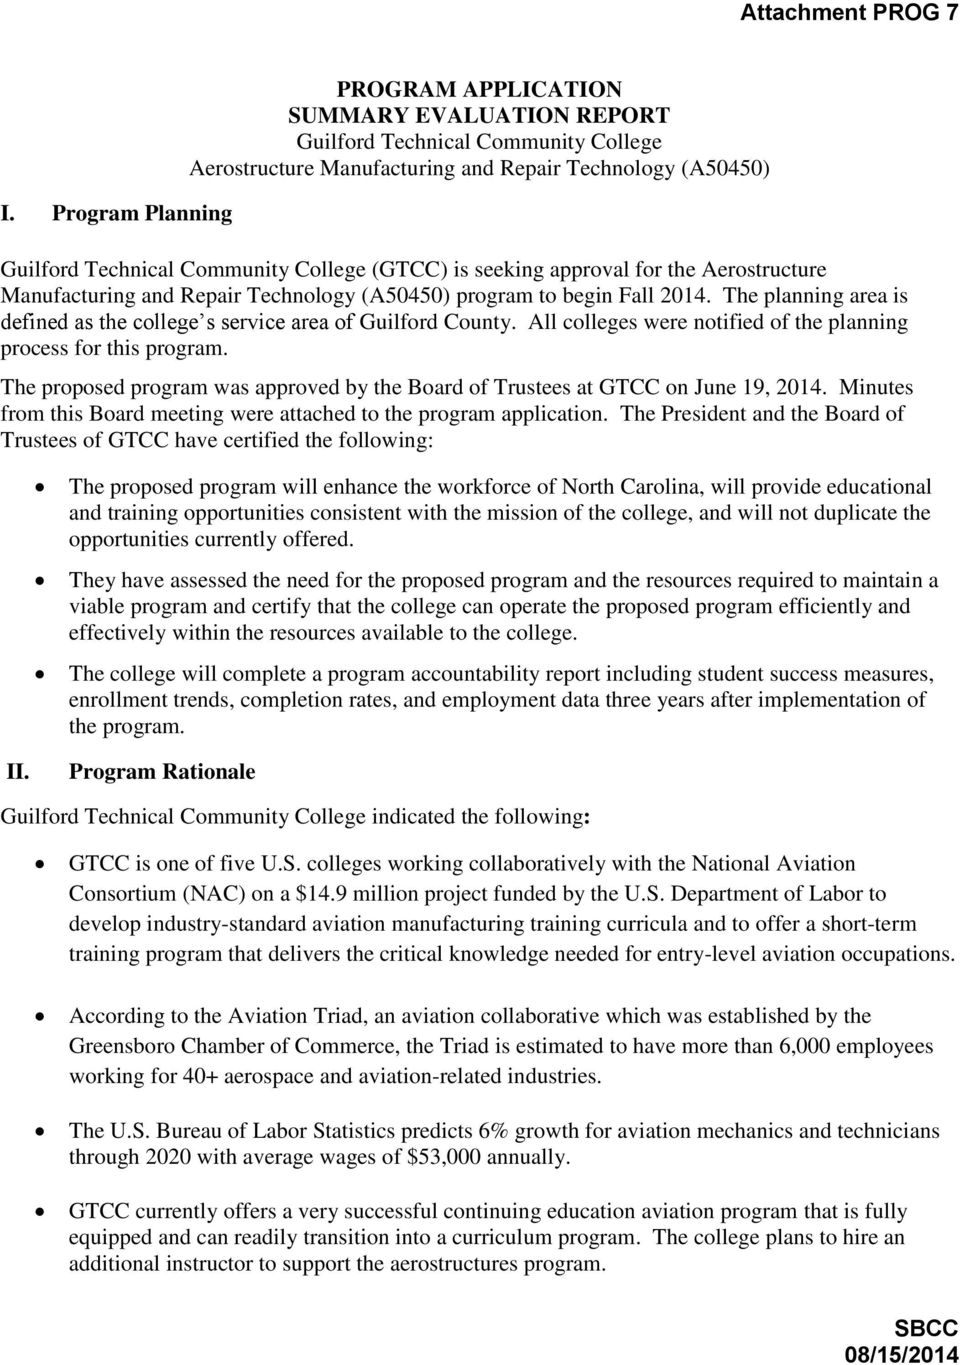 (GTCC) is seeking approval for the Aerostructure Manufacturing and Repair Technology (A50450) program to begin Fall 2014. The planning area is defined as the college s service area of Guilford County.